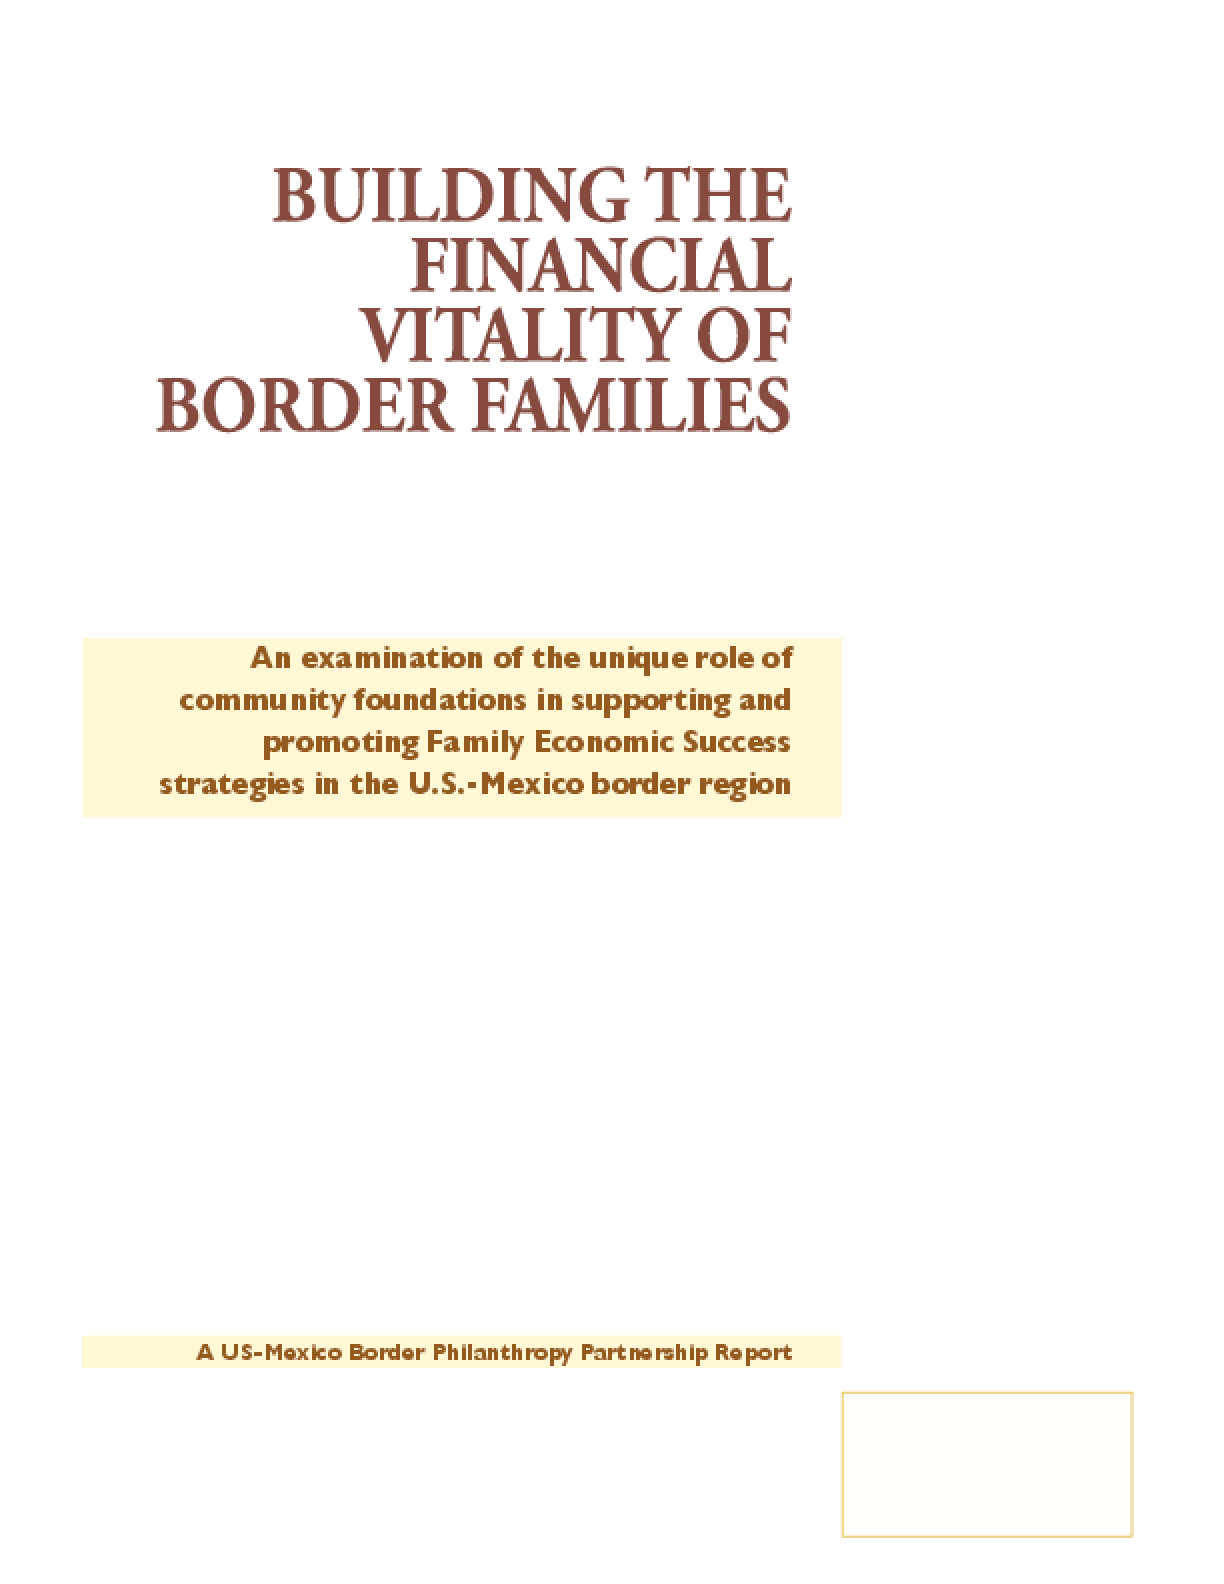 Building the Financial Vitality of Border Families